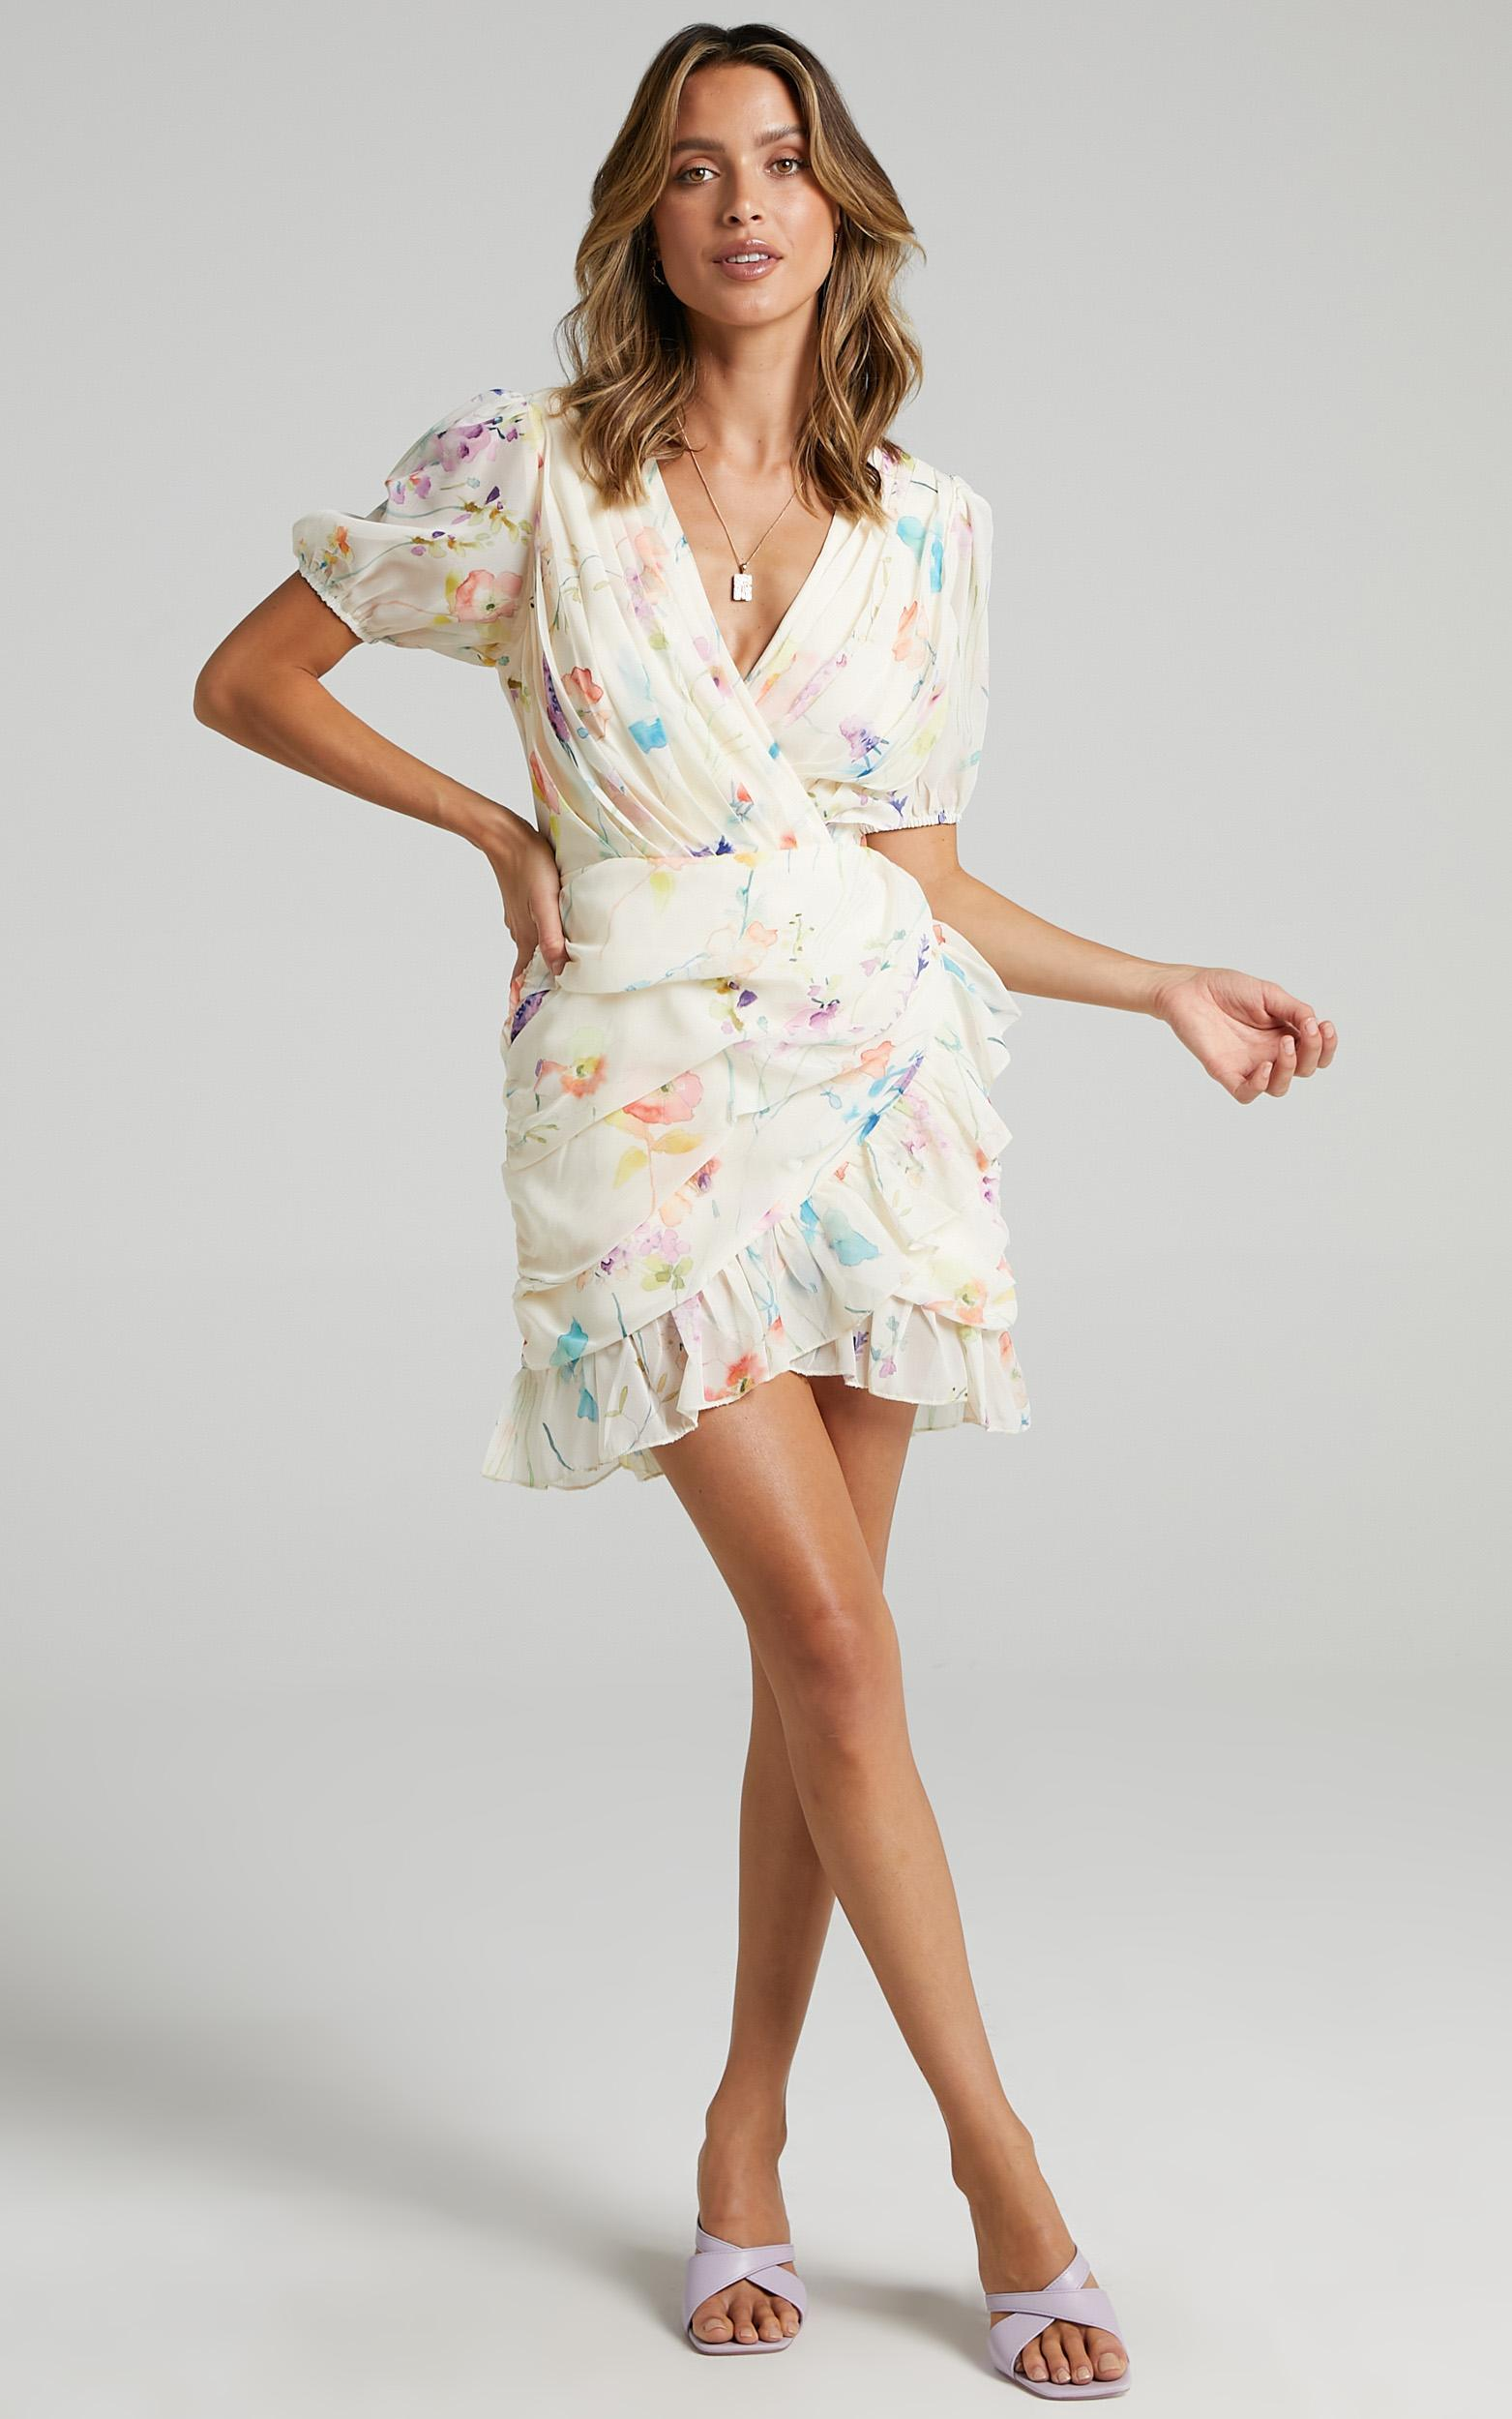 Arwyn Dress in Watercolour Floral - 6 (XS), MLT2, hi-res image number null